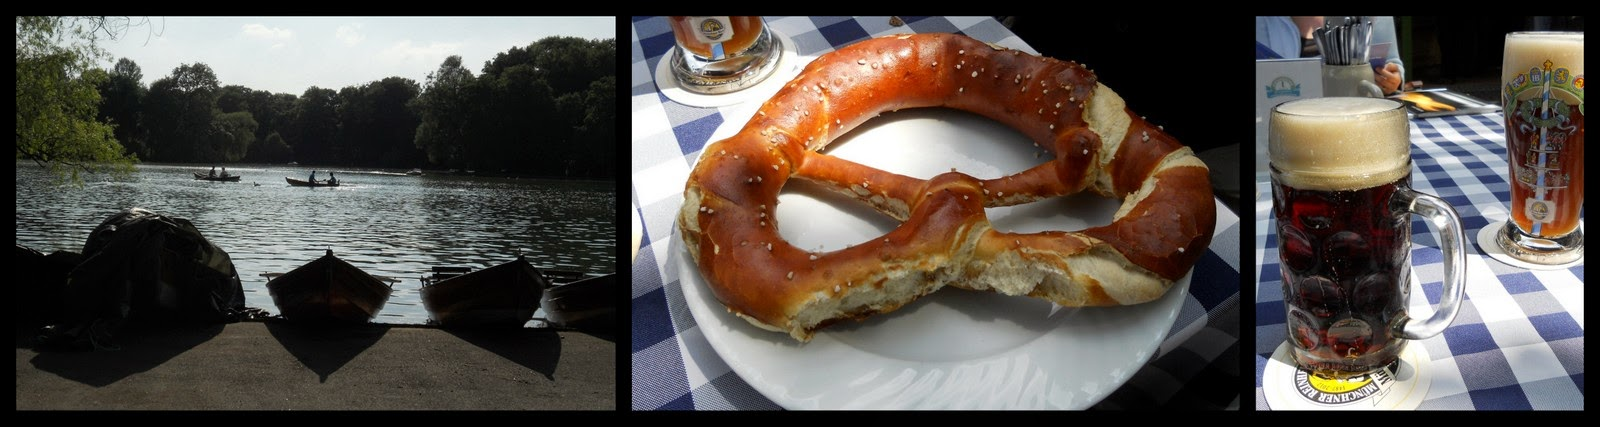 Munich - Beer and Pretzel in the Englischer Garten